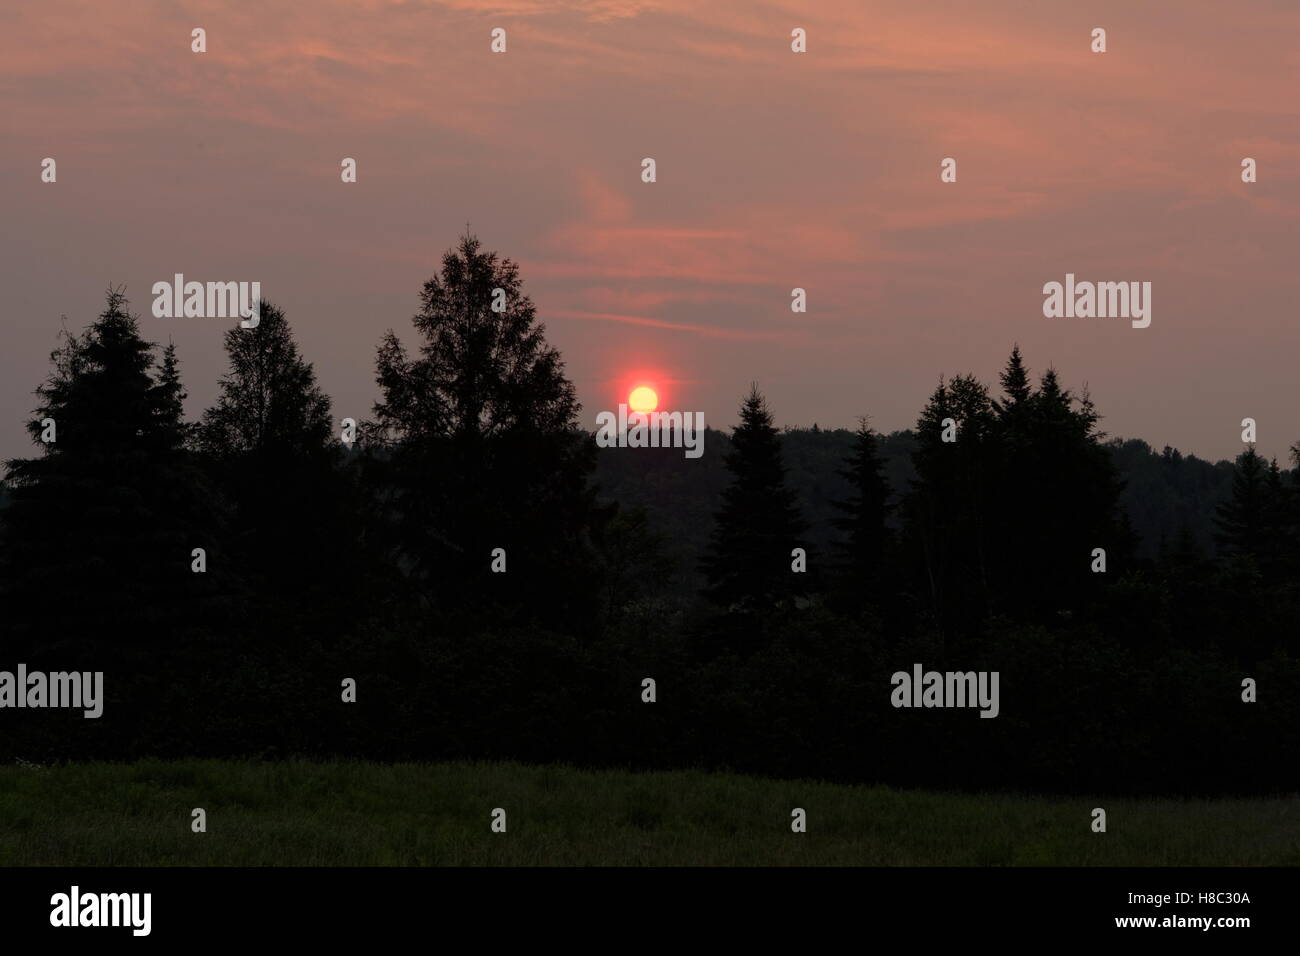 sunrise-at-the-farm-H8C30A.jpg